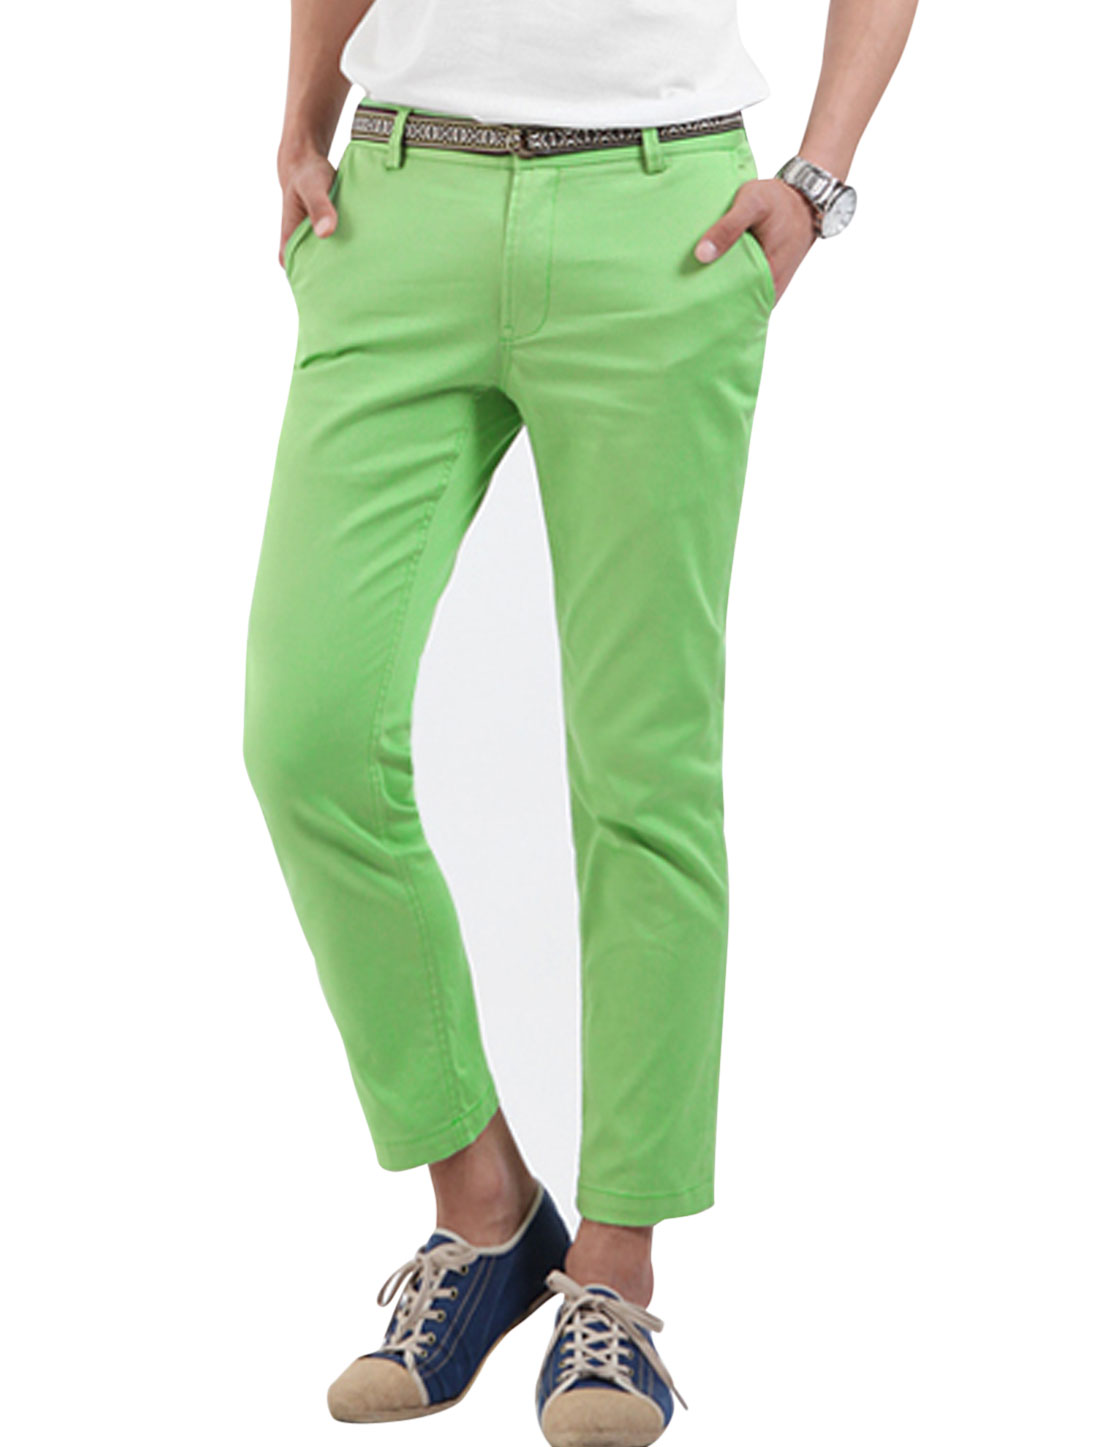 Men Imitation Leather Decor Belt Loop Cropped Pants Light Green W30